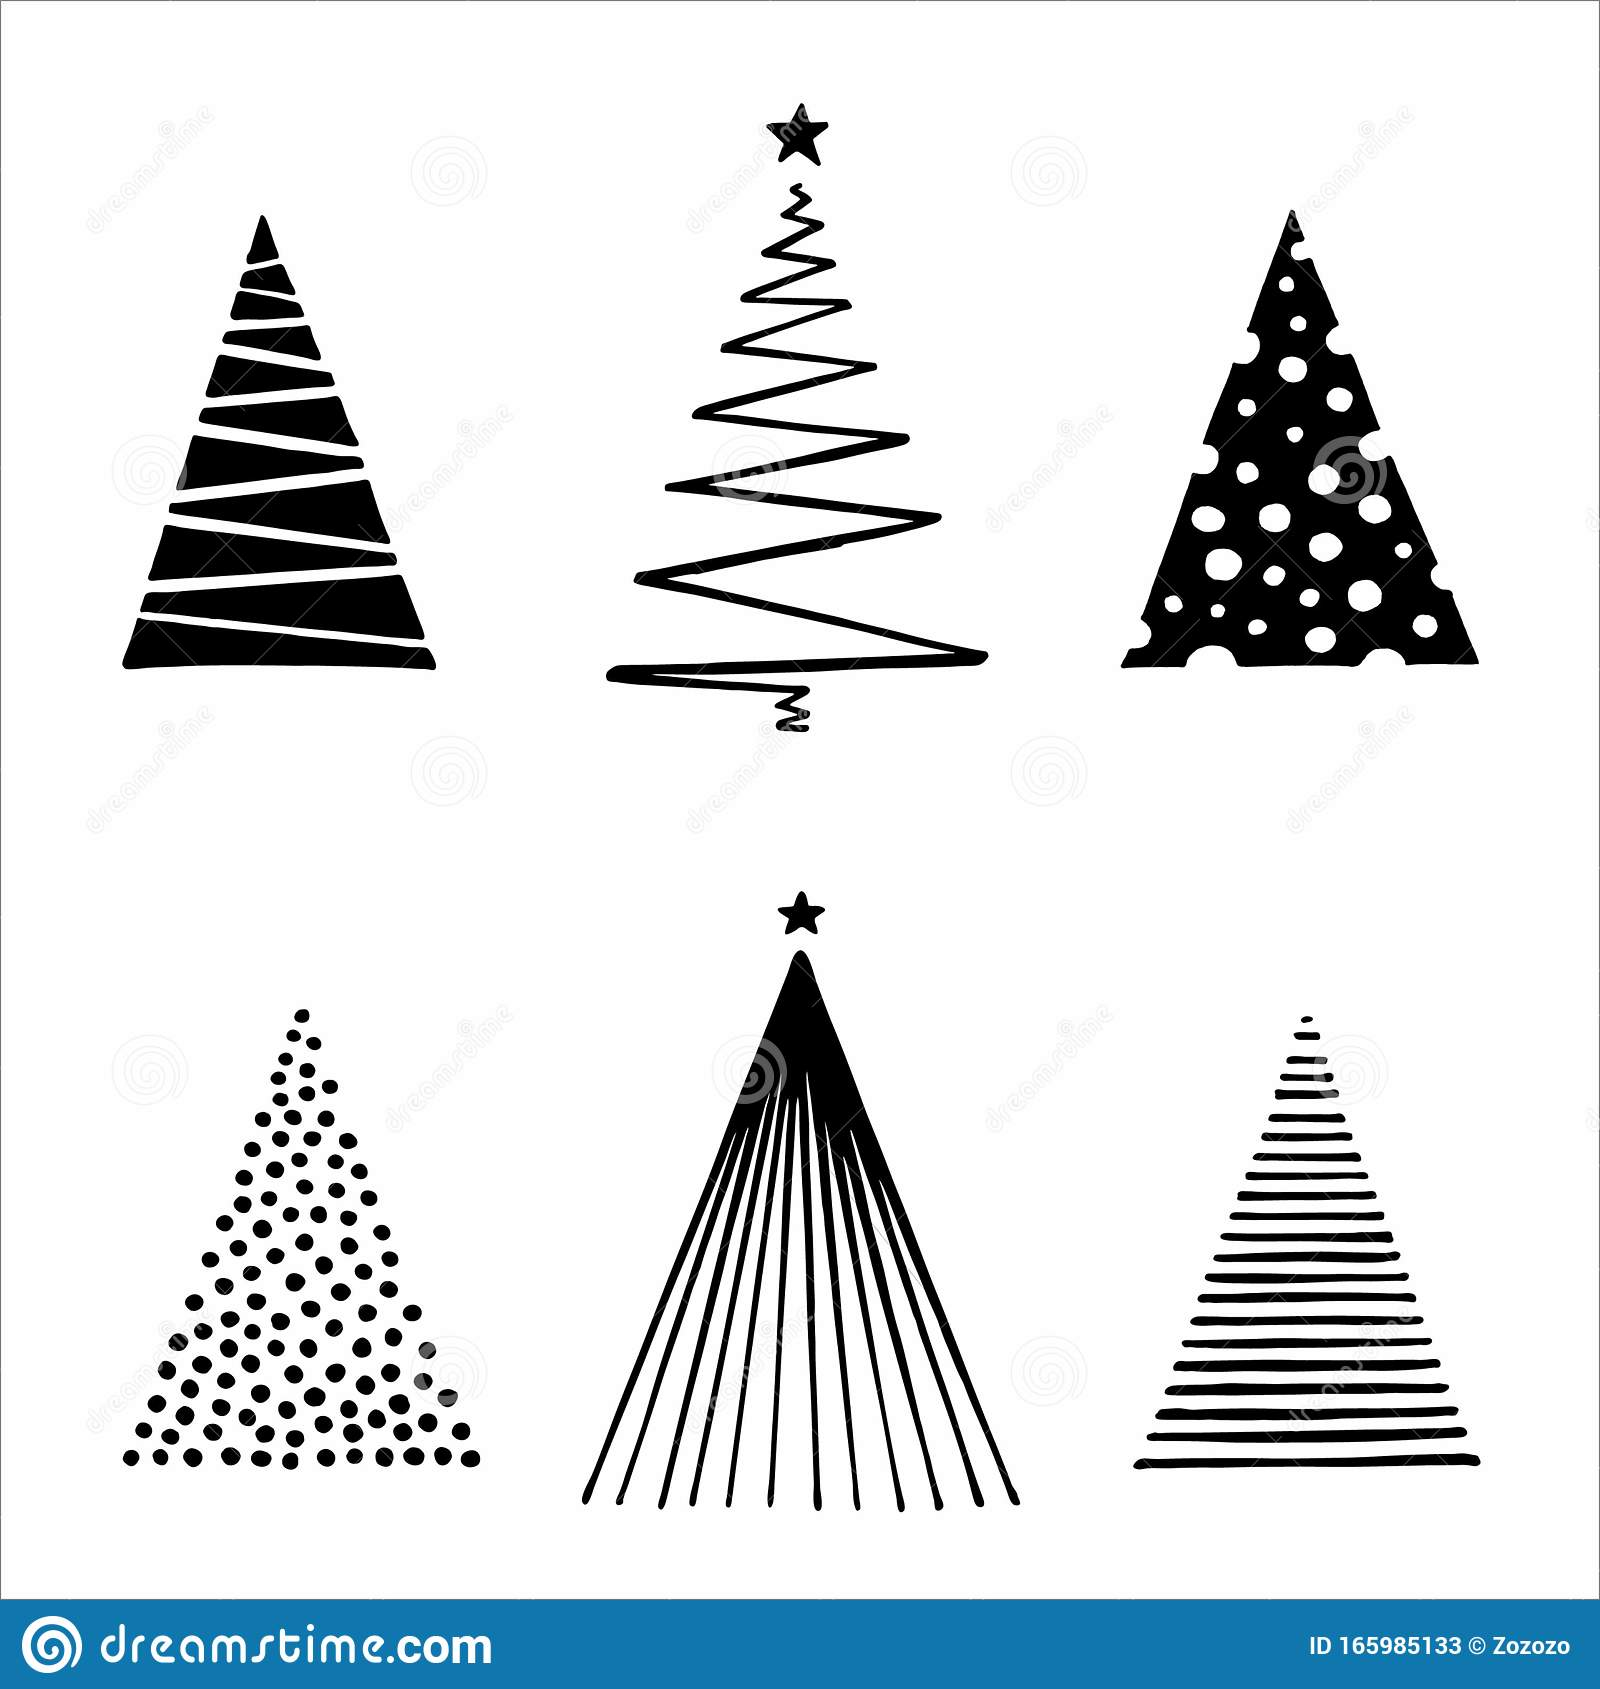 Geometric Christmas Tree Vector Set Stock Vector Illustration Of Cedar Black 165985133